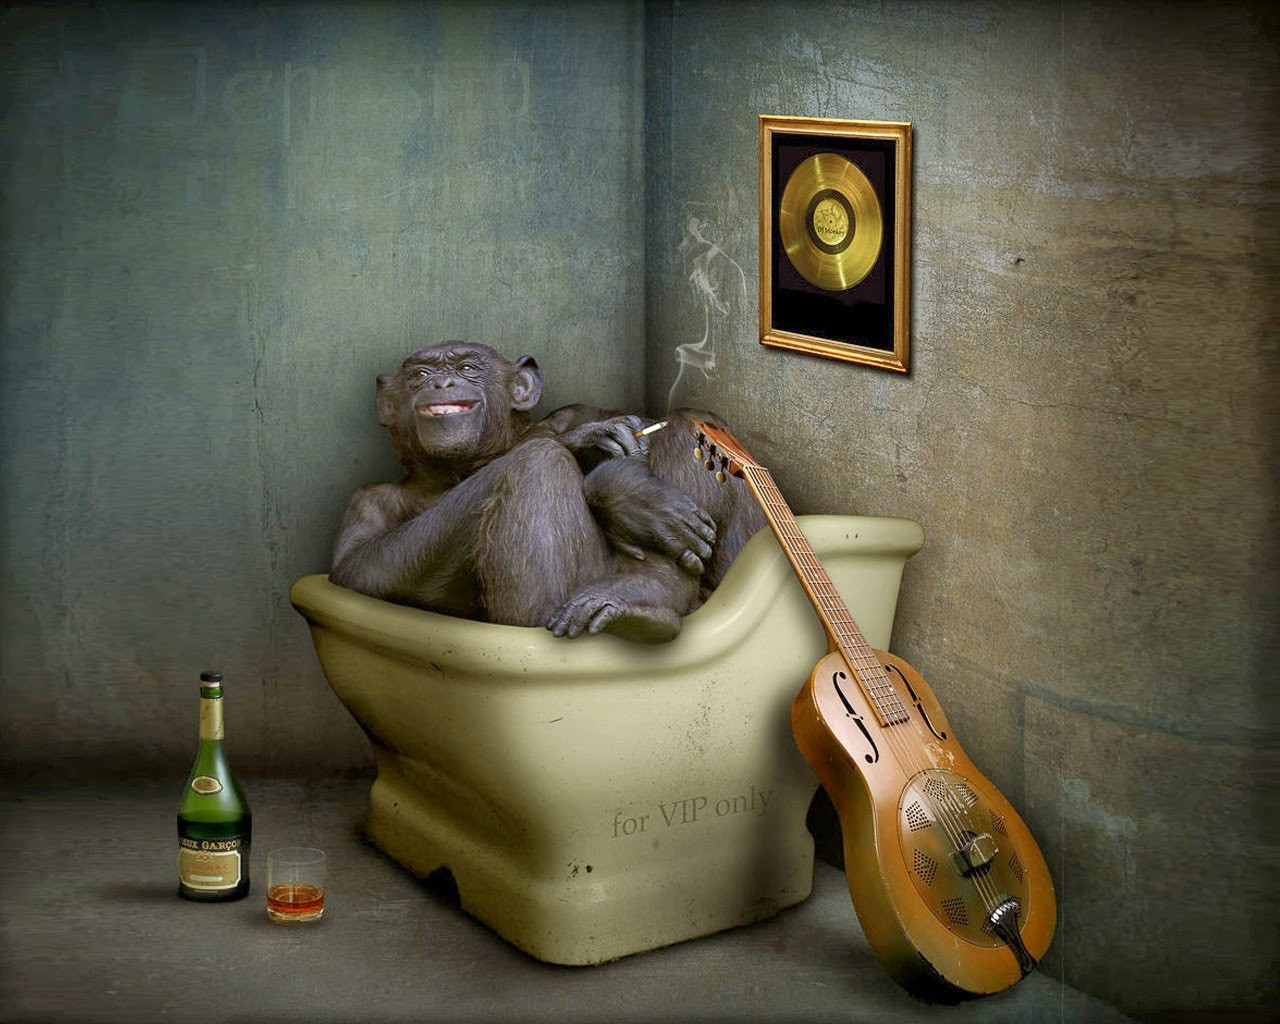 Funny Monkey In Tub Cool Creative Humour High Resolution 1280x1024